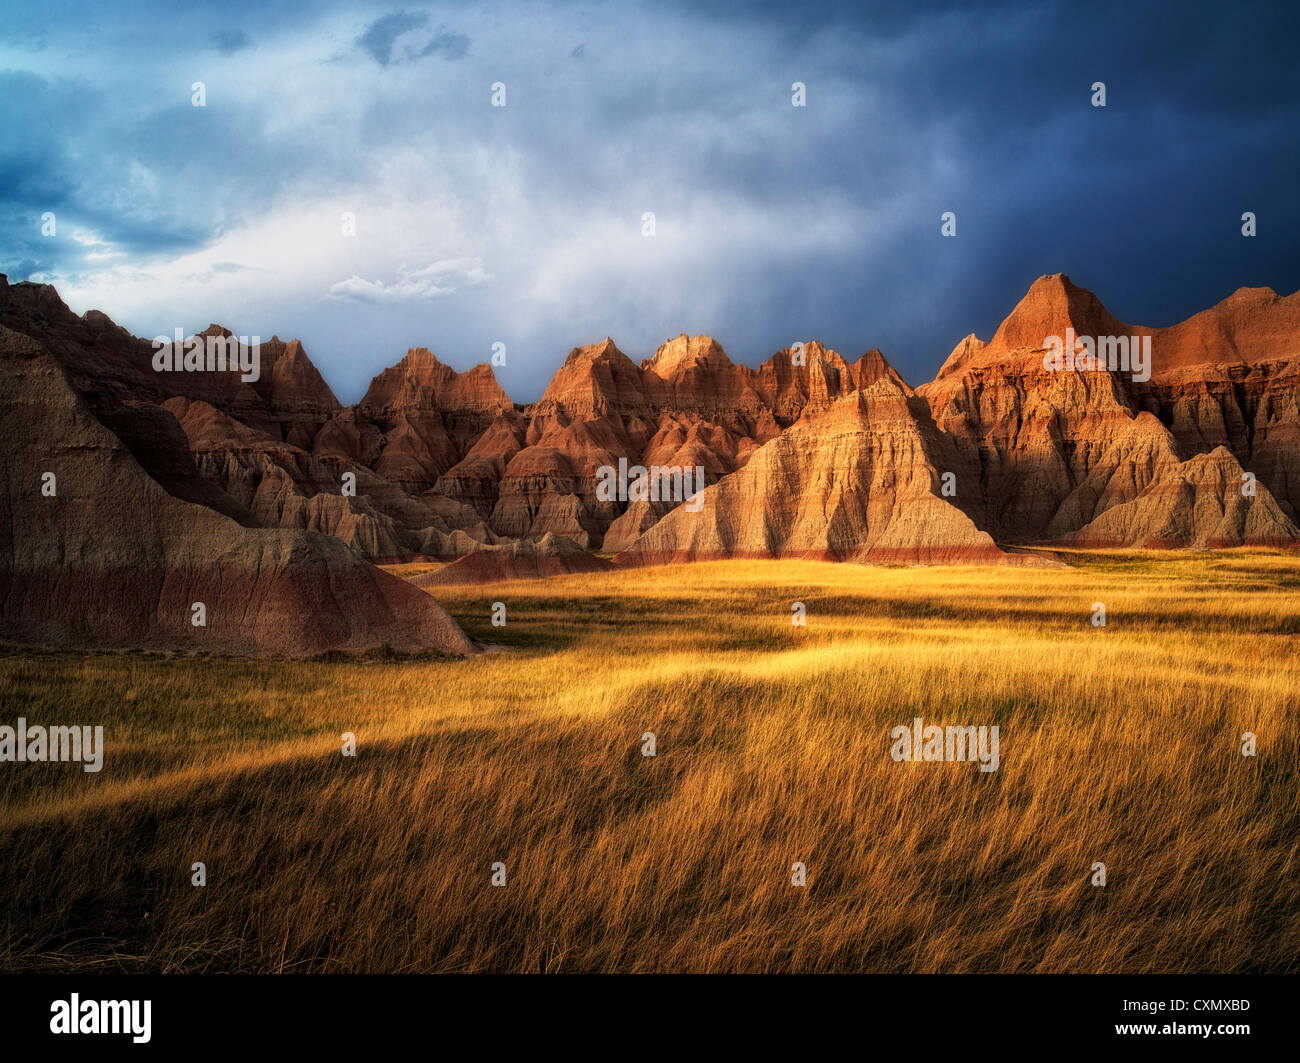 Grass meadow and colorful rocks. Badlands National Park, South Dakota. - Stock Image